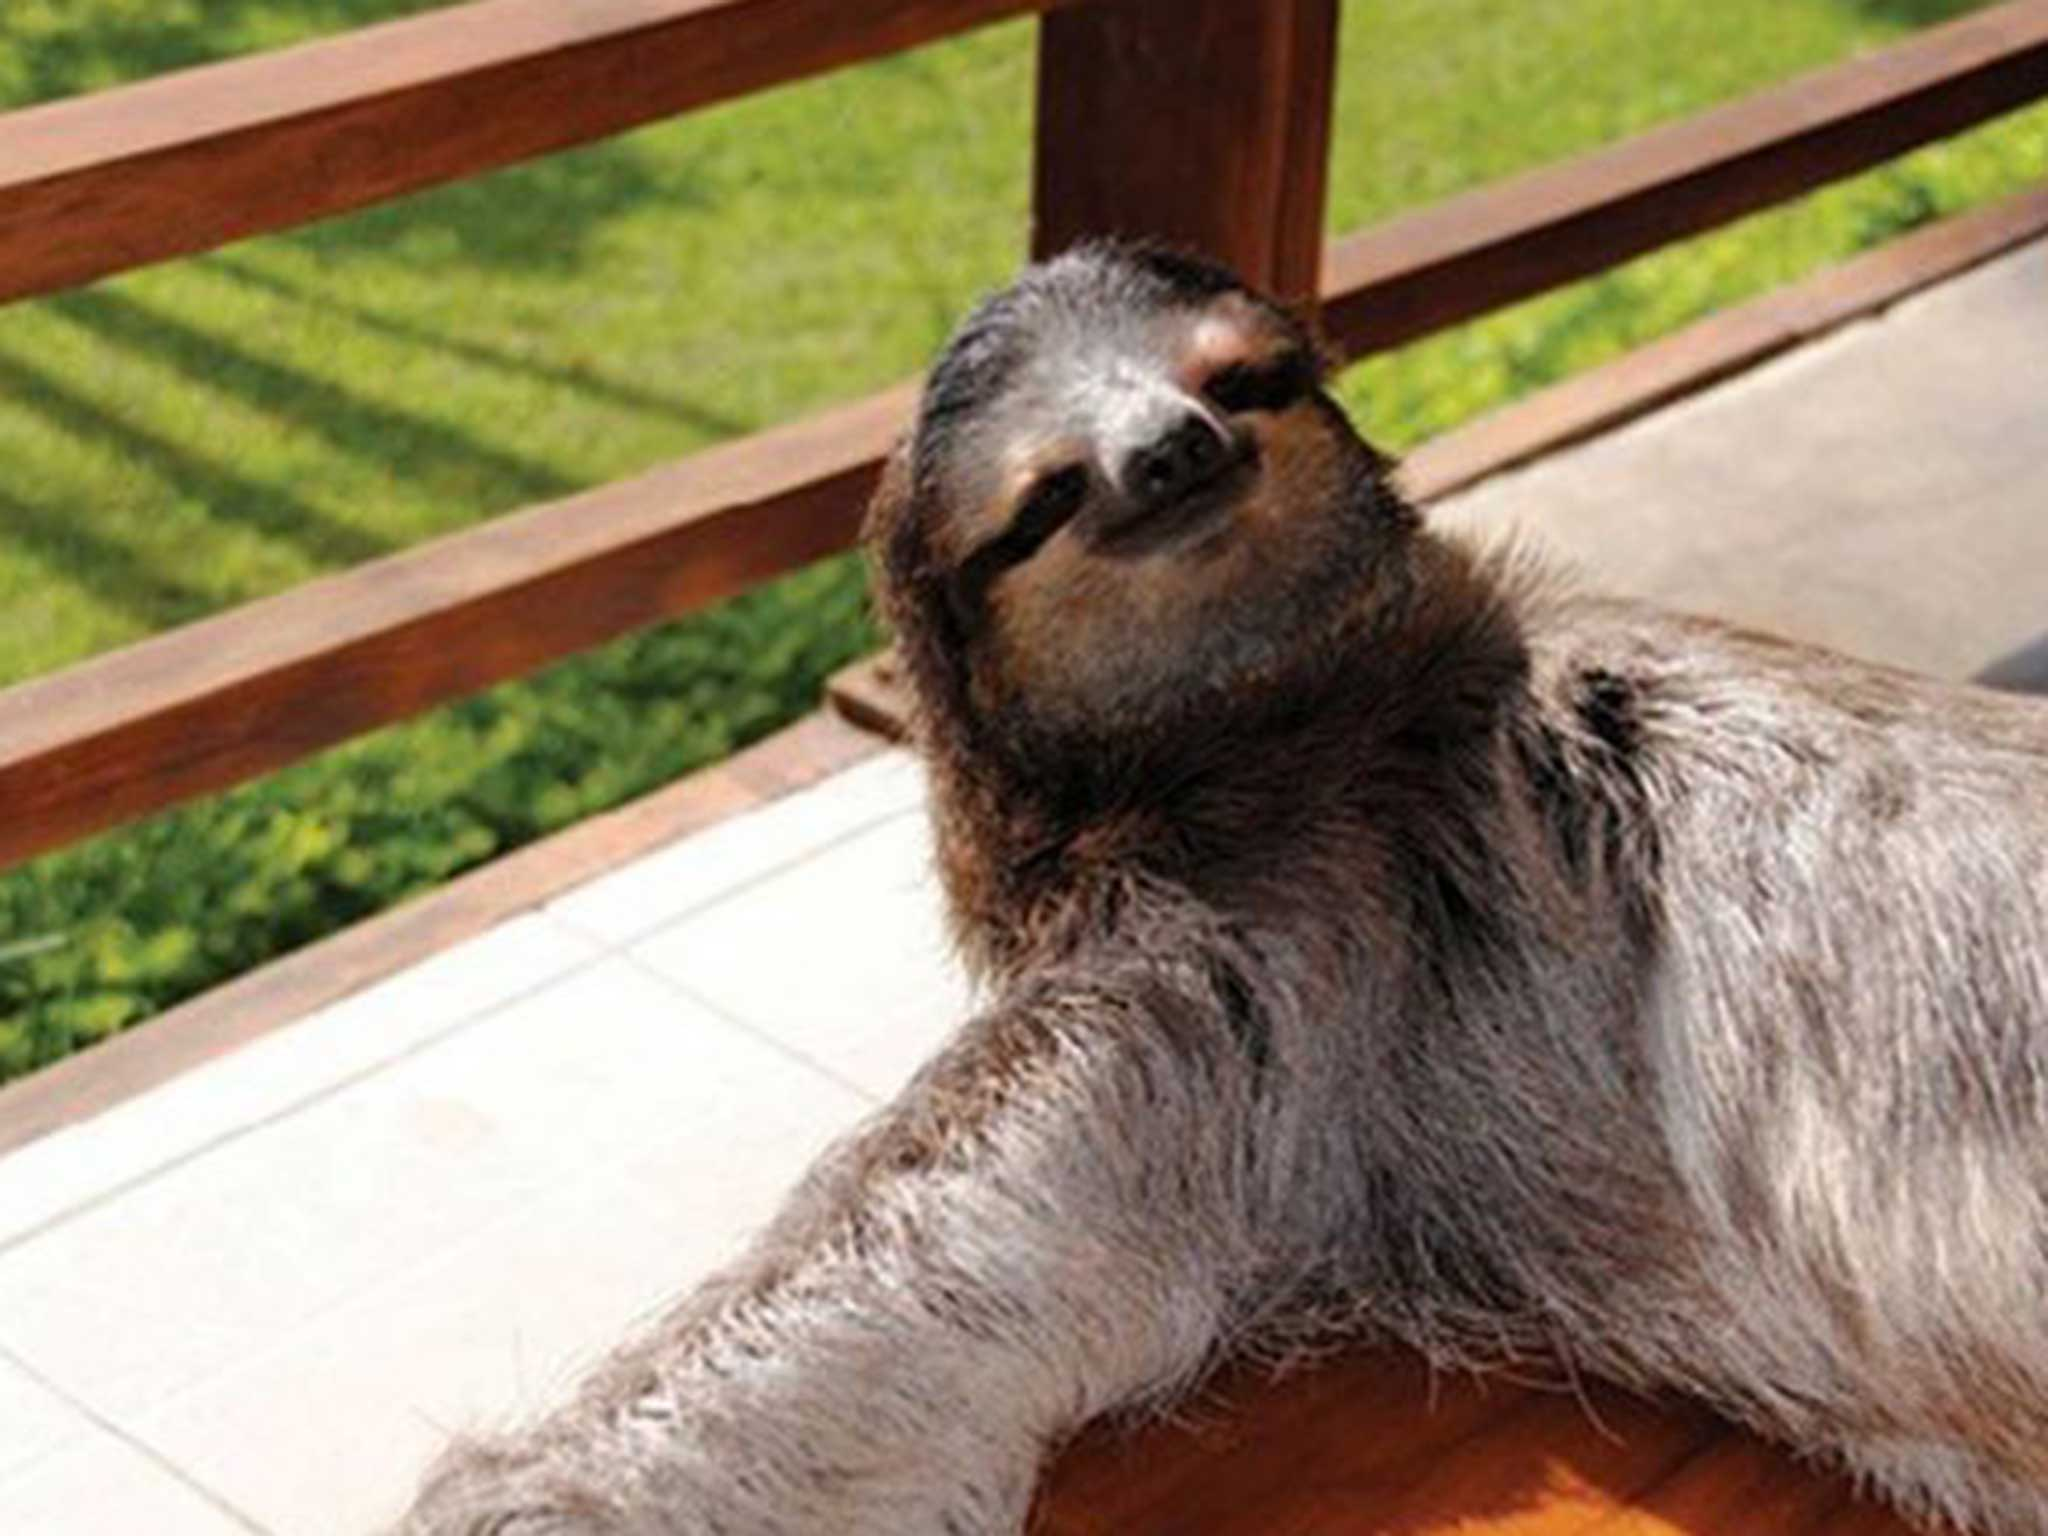 The sloth is now the face (and furry body) of three big